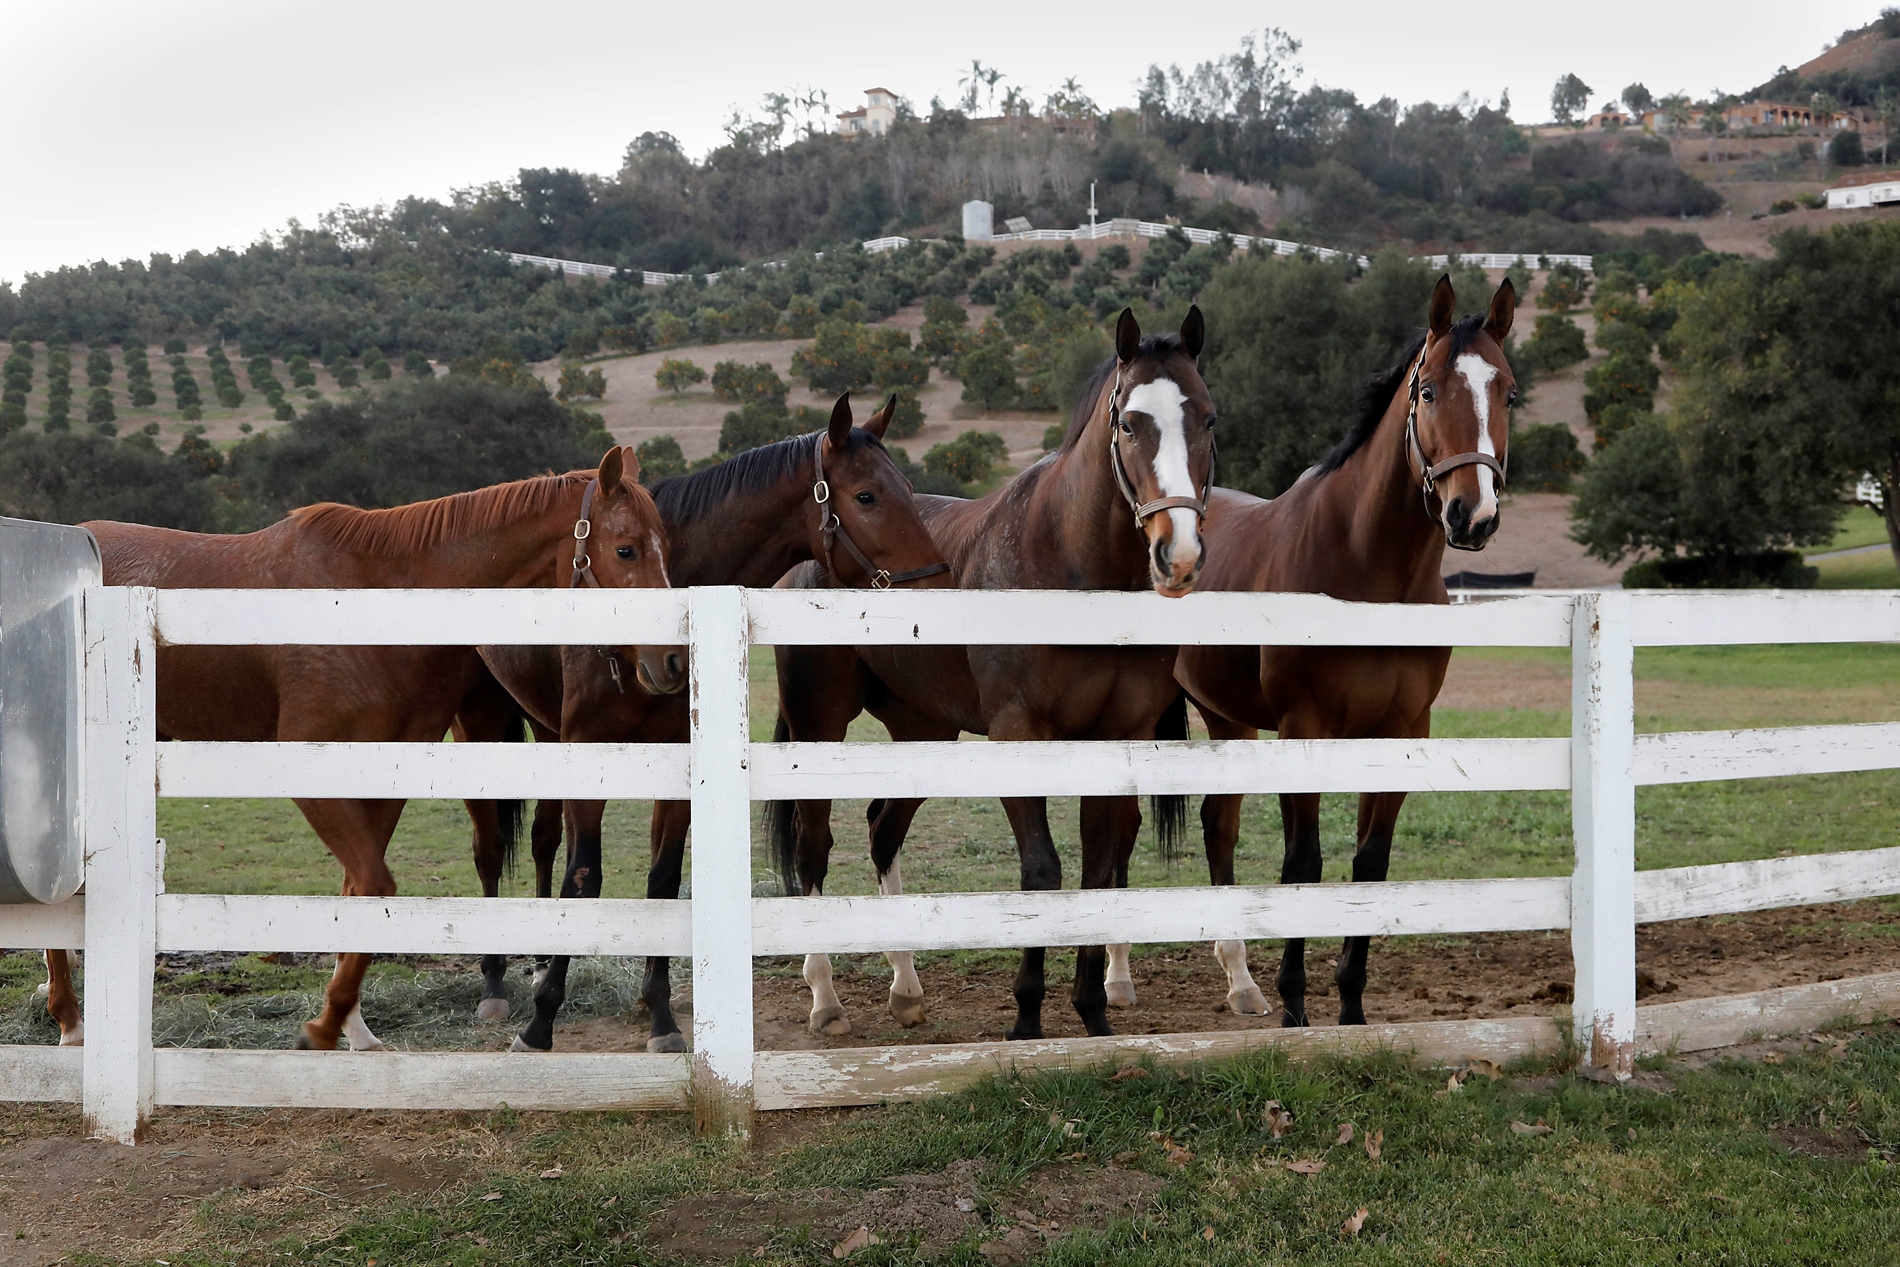 Ranch-Hands Race to Free 500 Thoroughbred Horses Amid California Wildfires